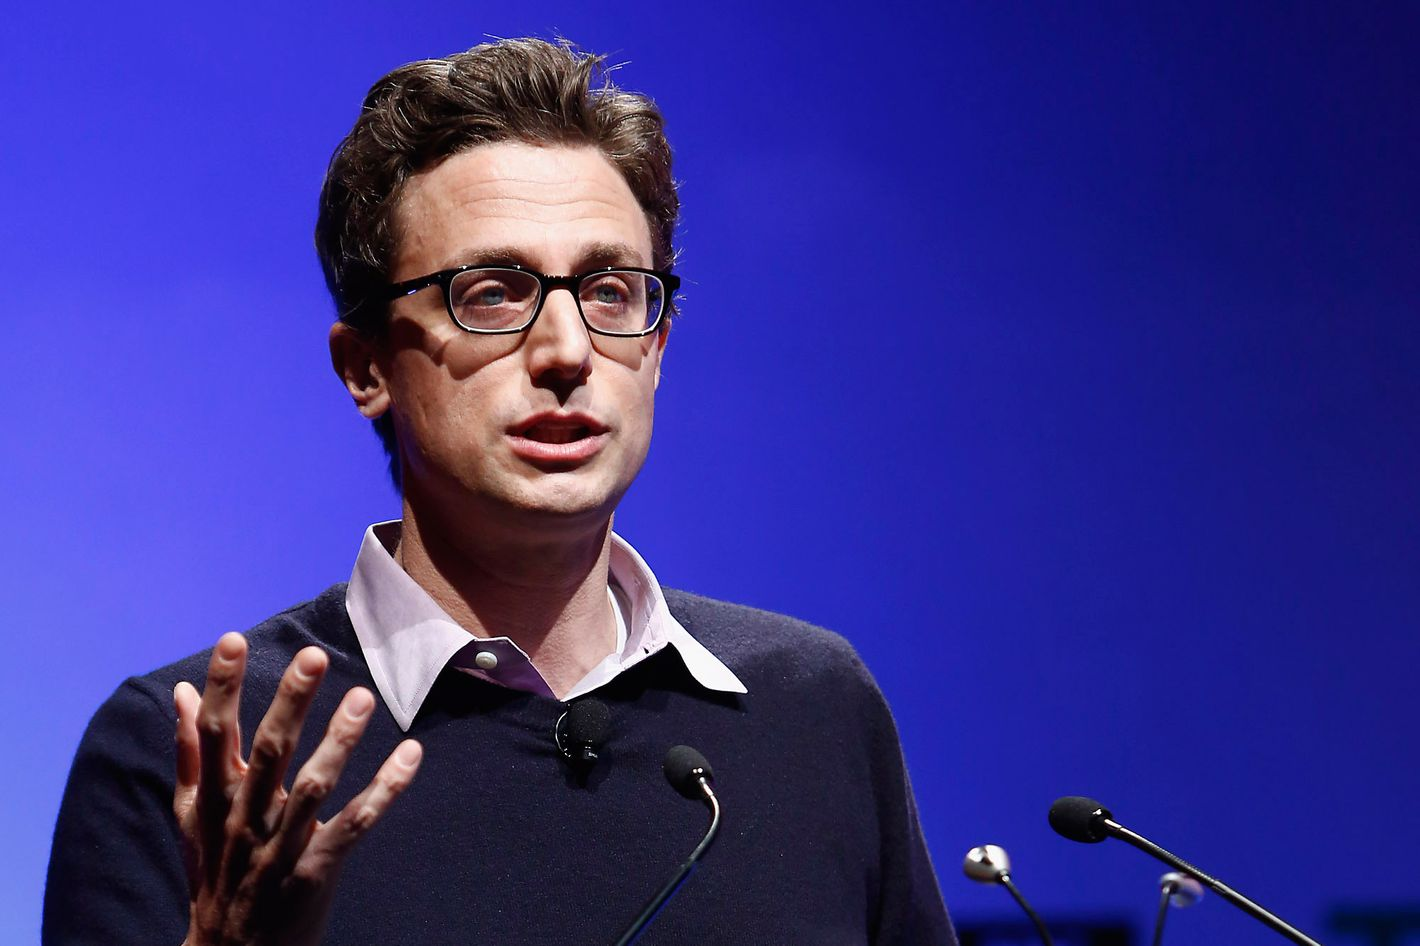 Jonah Peretti of Buzzfeed speaks onstage at the TechCrunch Disrupt NY 2013 at The Manhattan Center on April 29, 2013 in New York City.